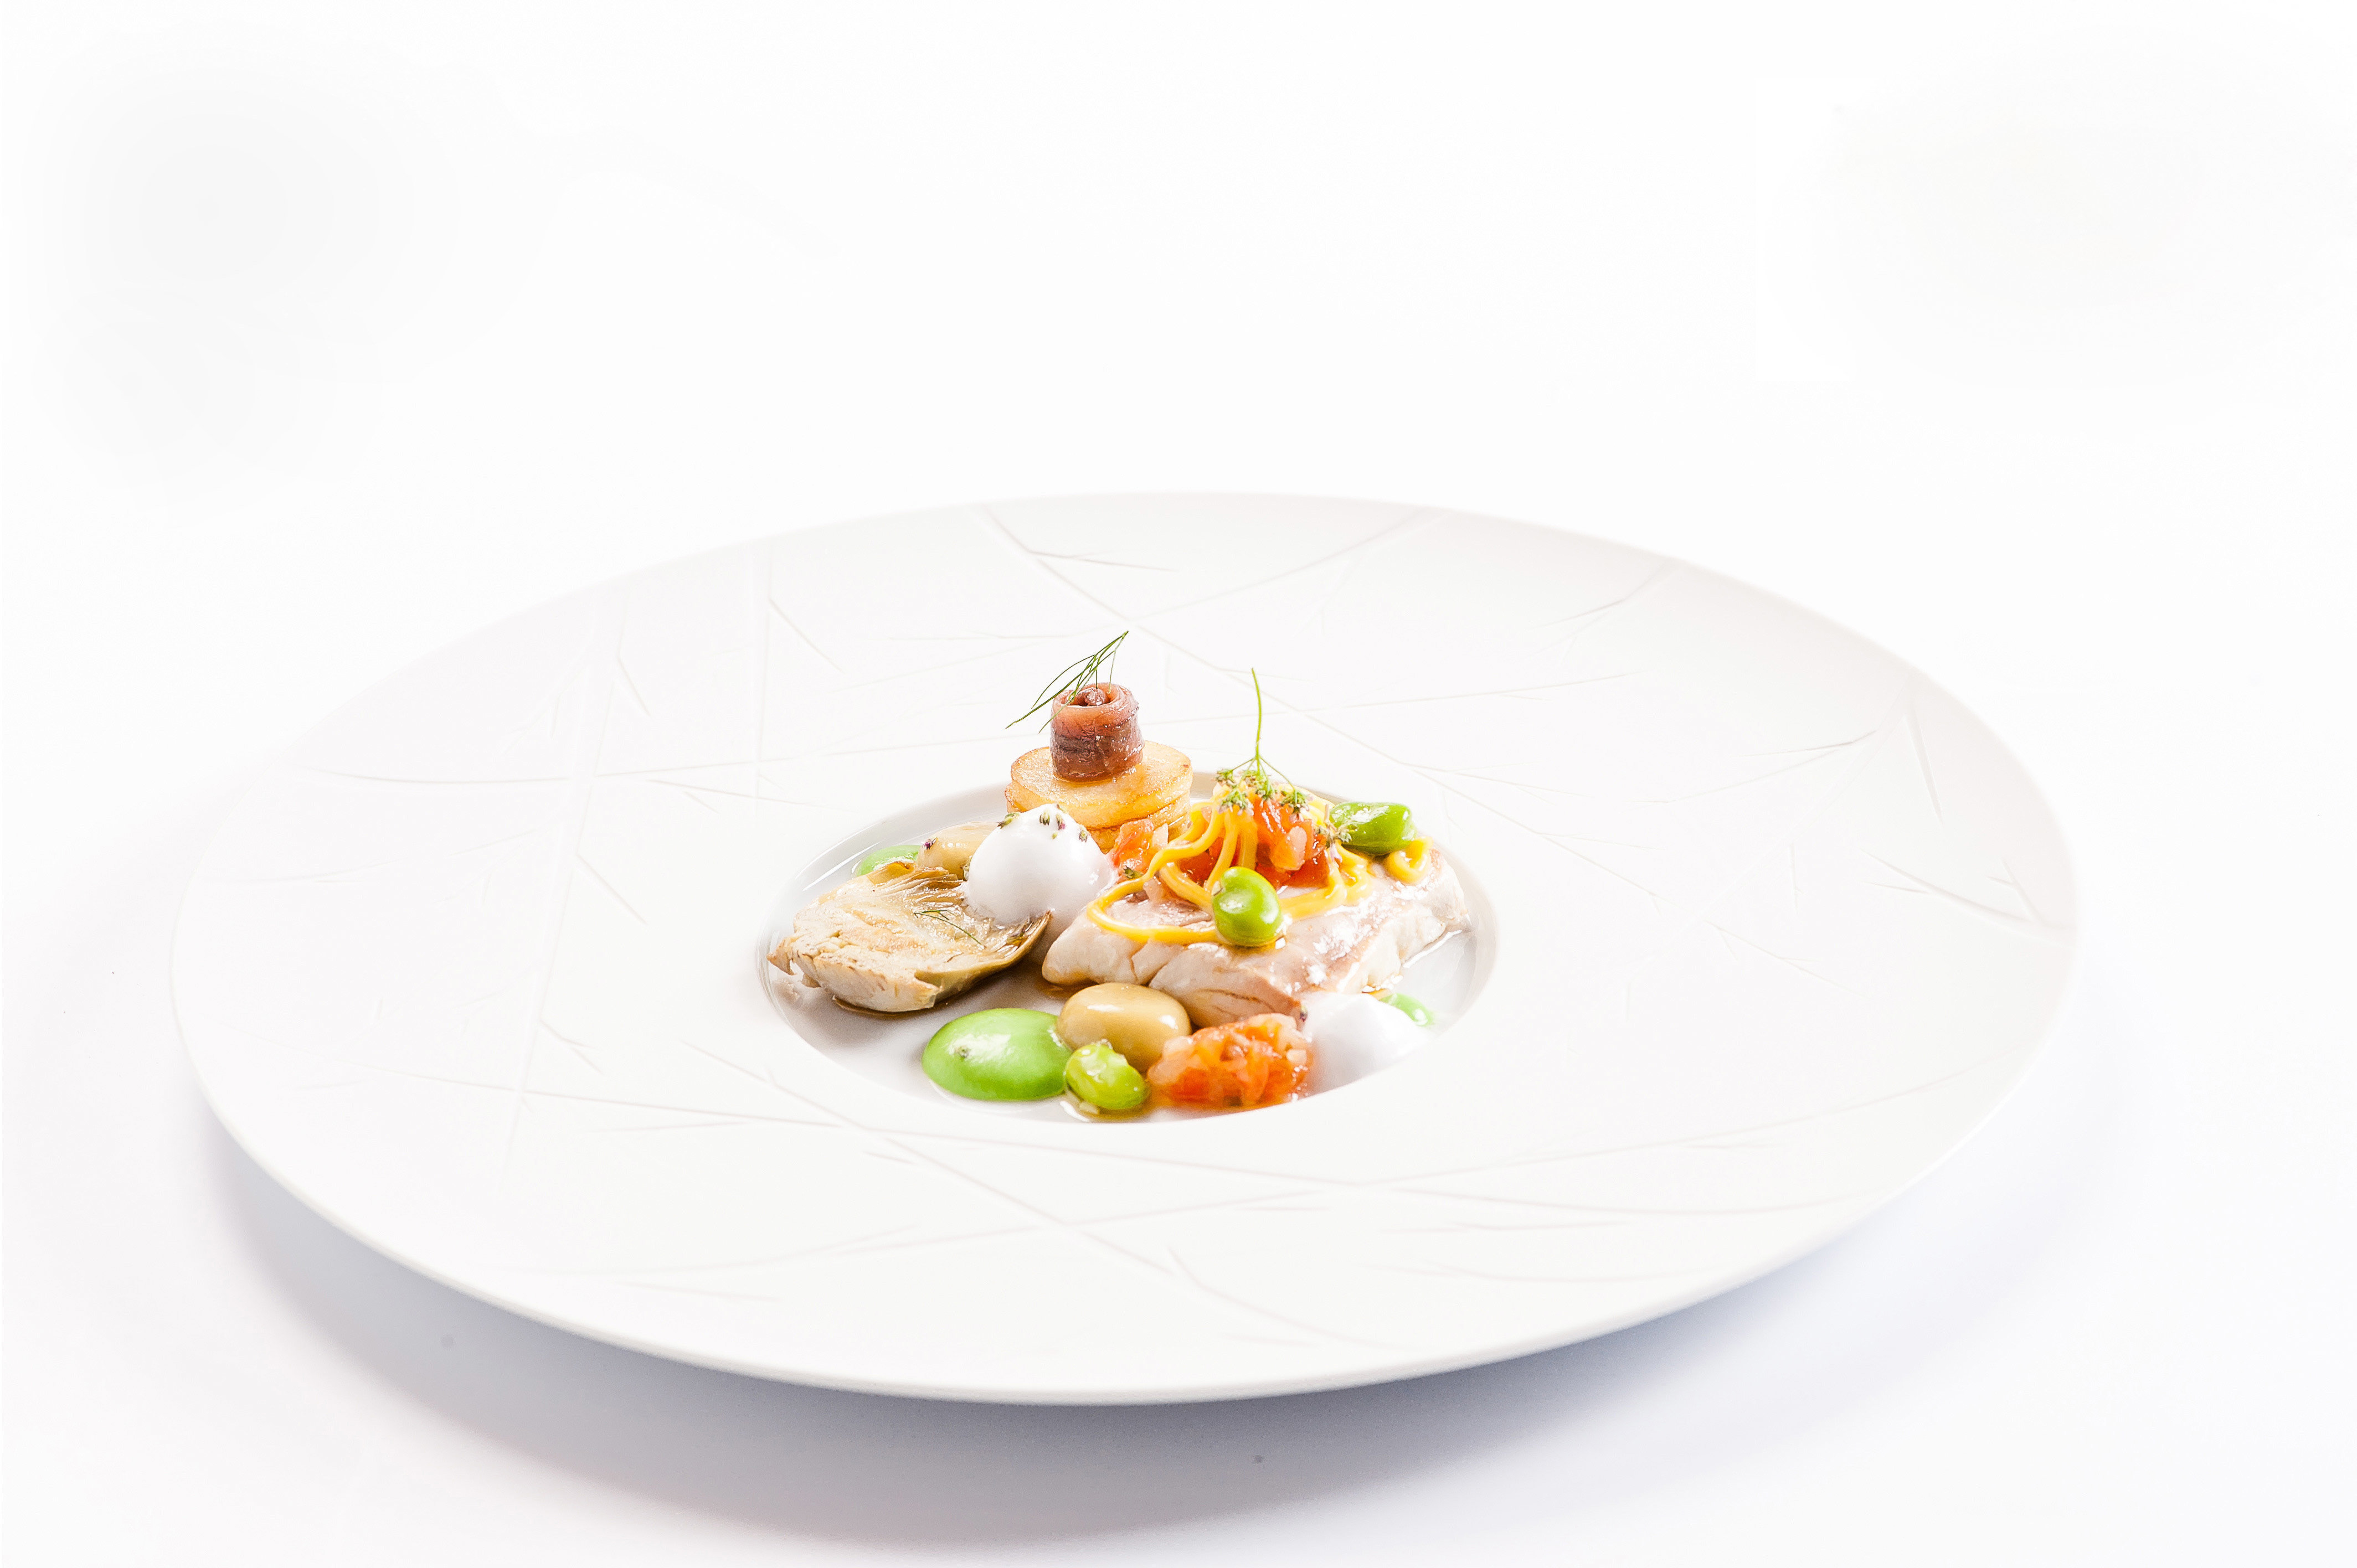 Dining Drink Eat plate food white cuisine Seafood dishware